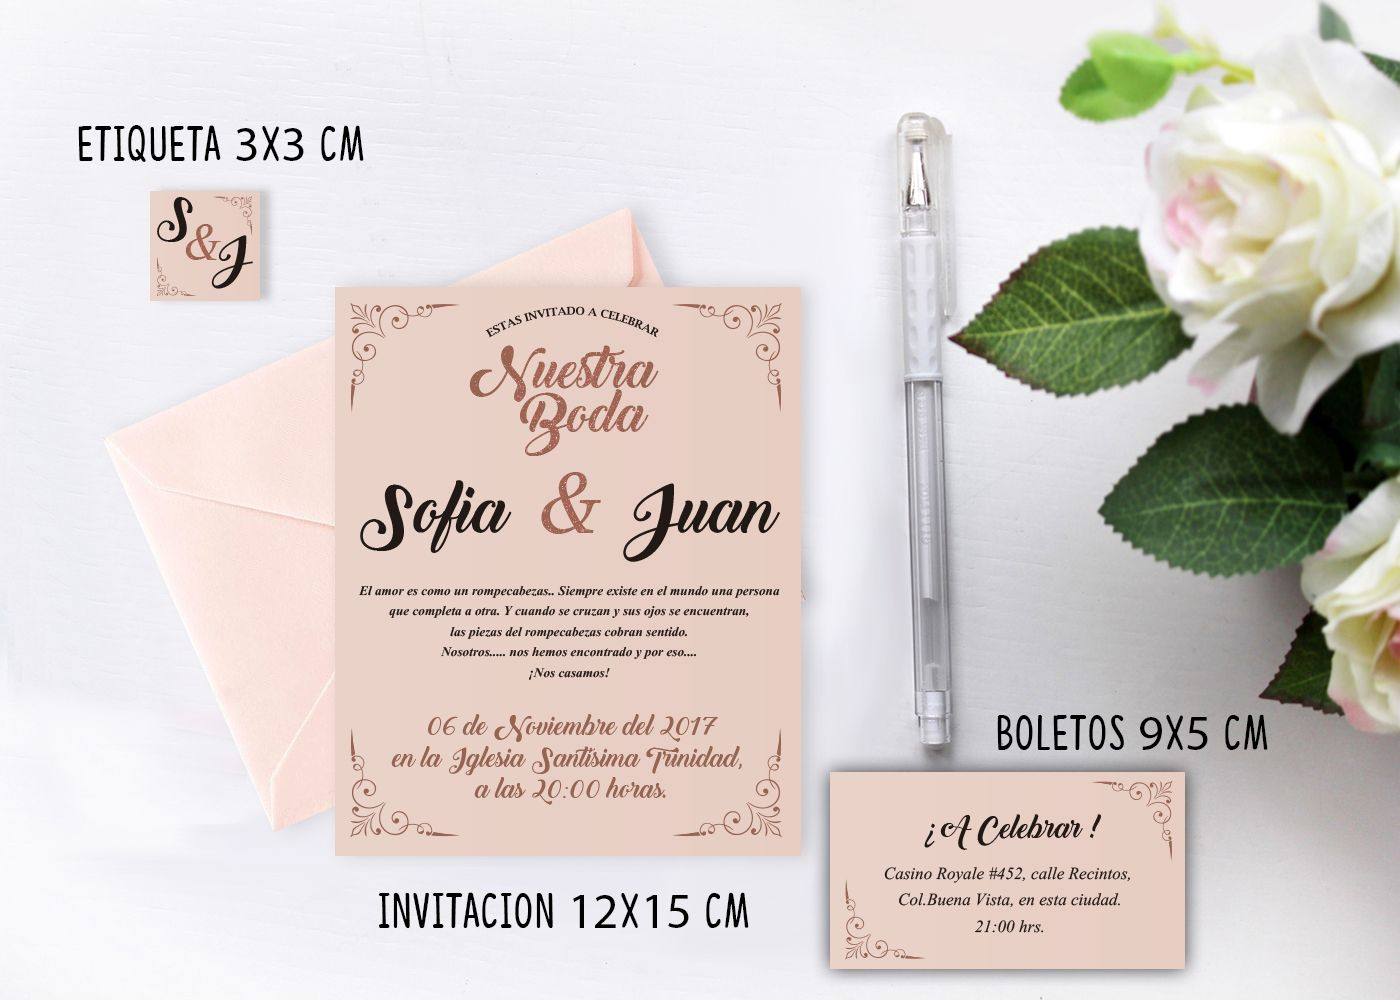 Printable wedding invitation / Invitacion boda imprimible.  #wedding #invitation #invitacion #boda #imprimible #printable